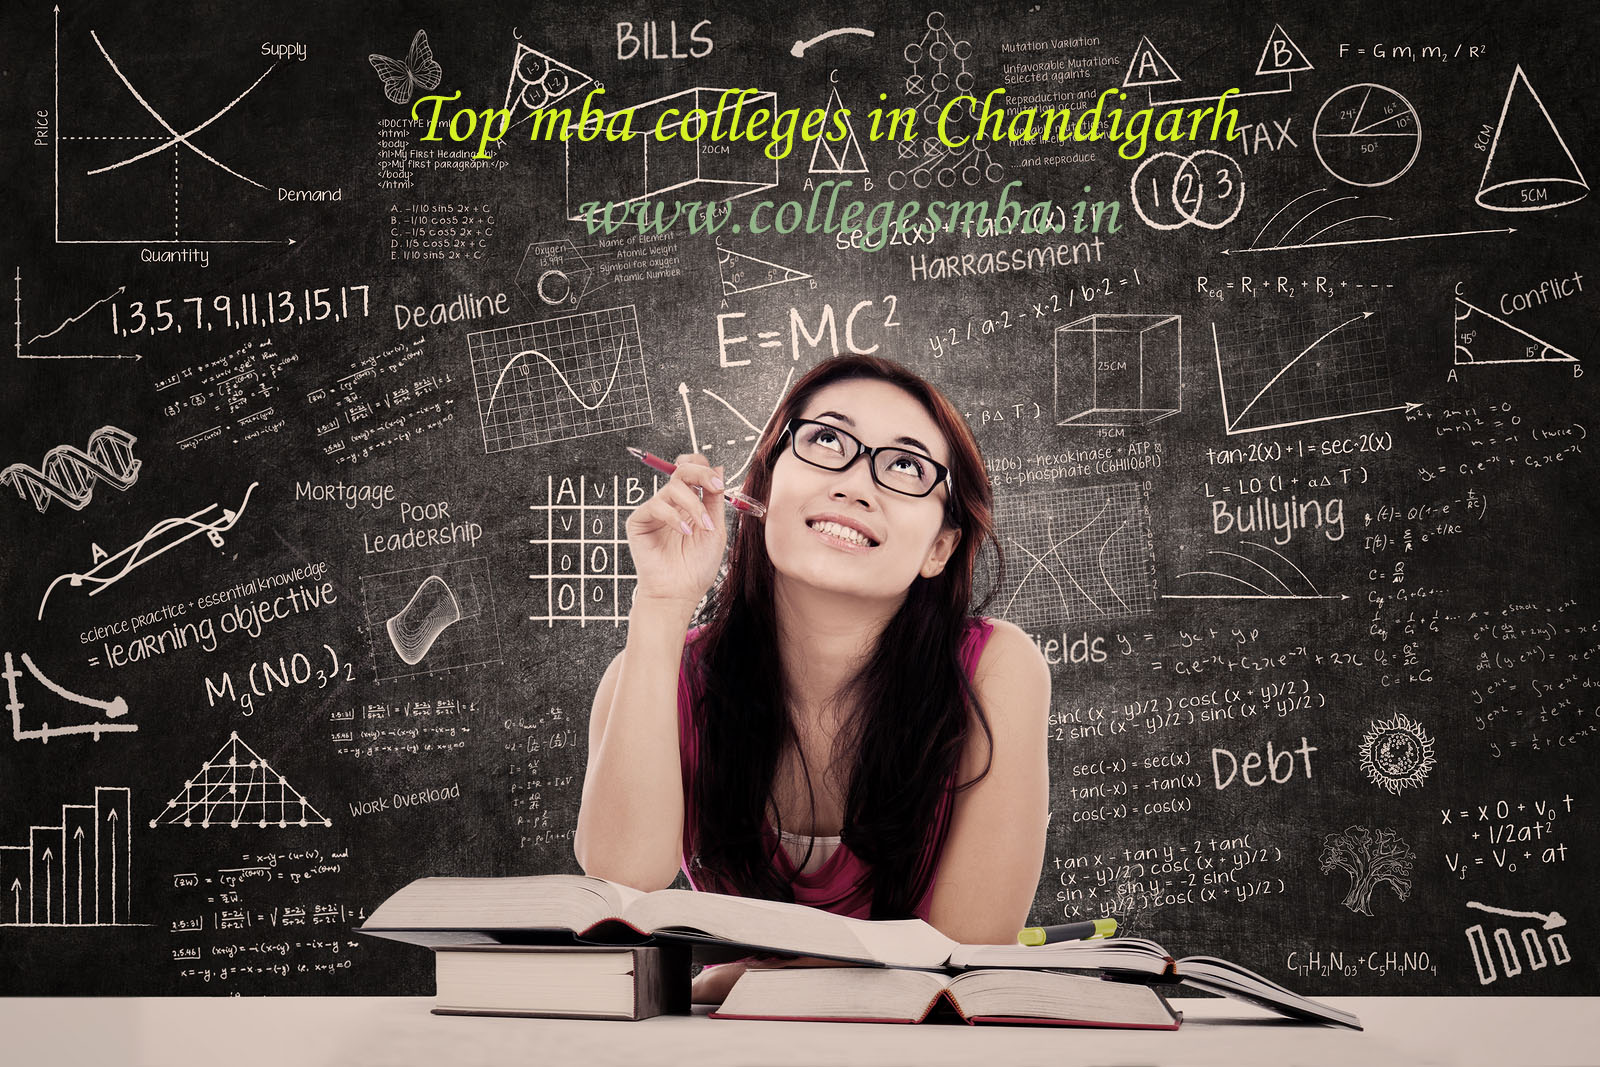 Top MBA Colleges in Chandigarh